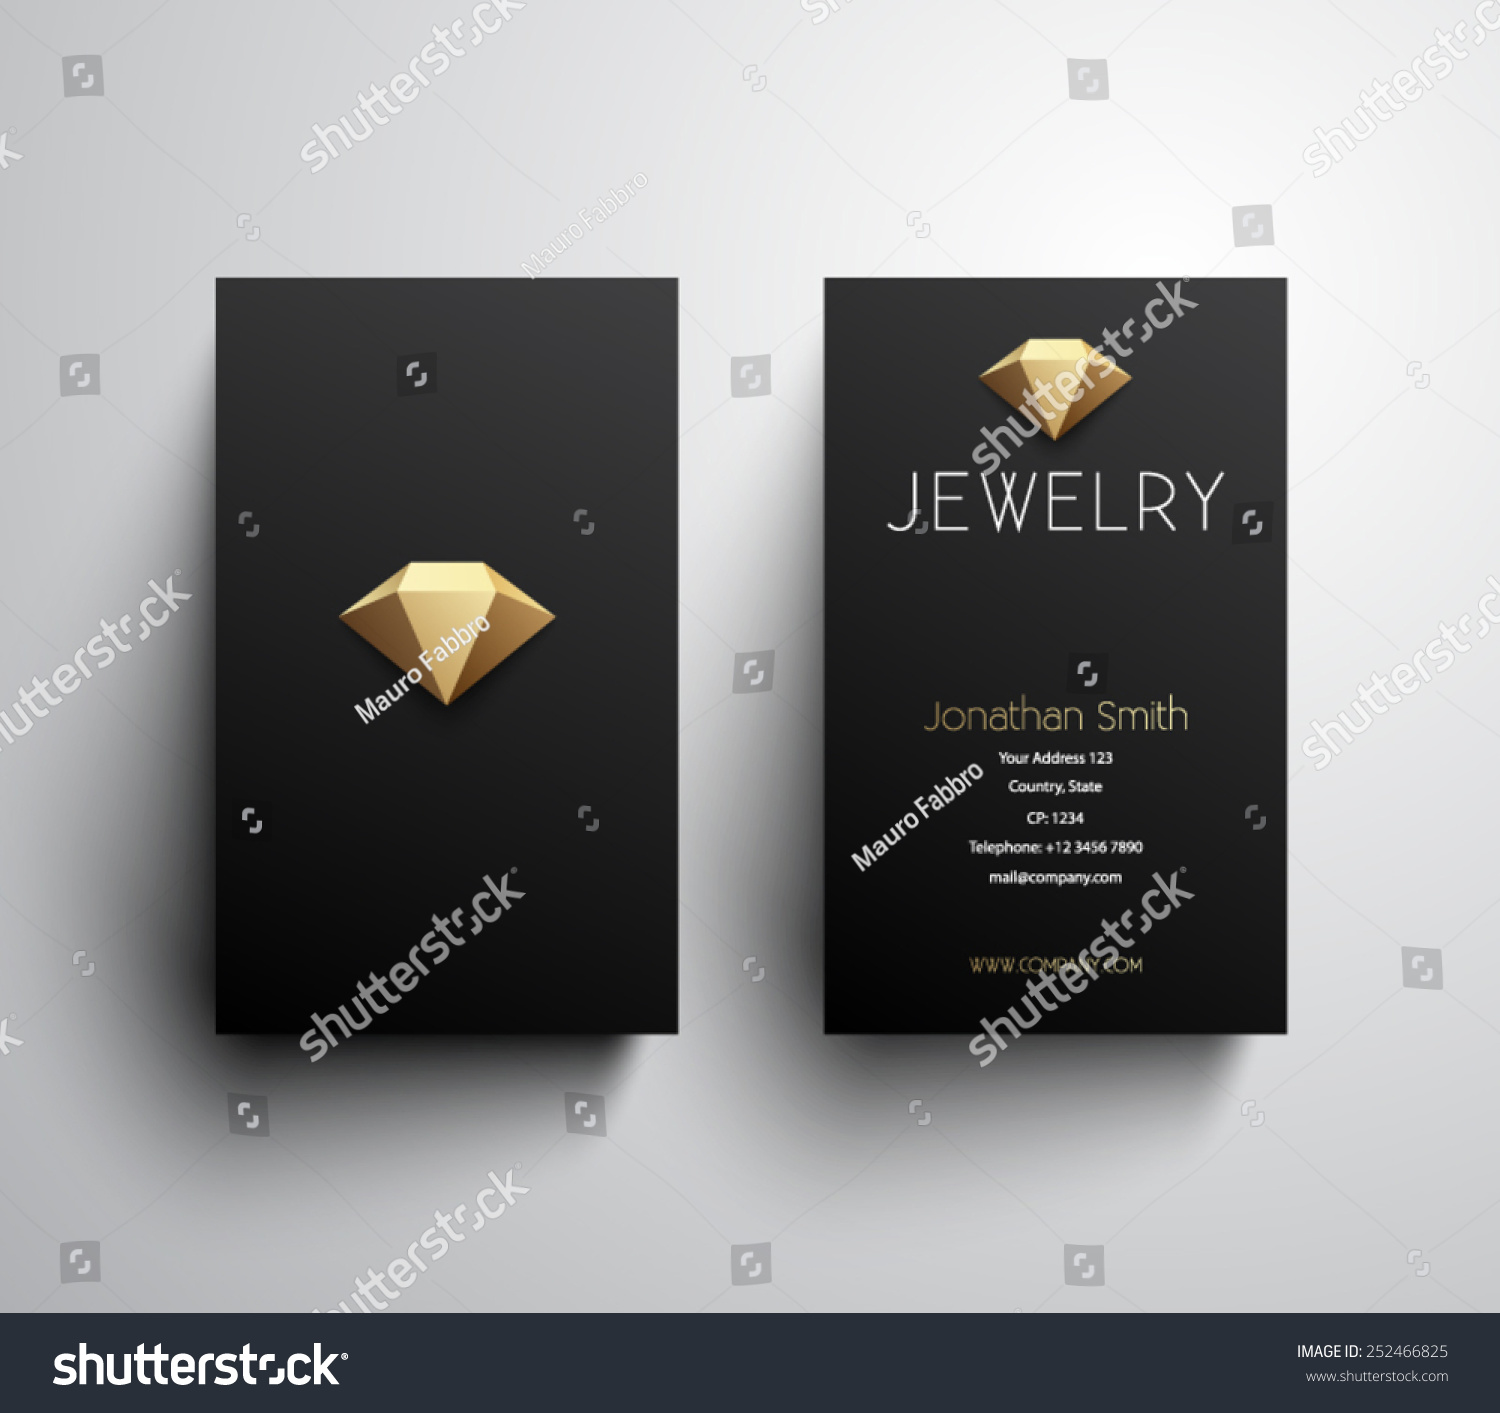 Royalty free abstract jewelry business card template 252466825 abstract jewelry business card template clean and modern style design logo logotype friedricerecipe Images